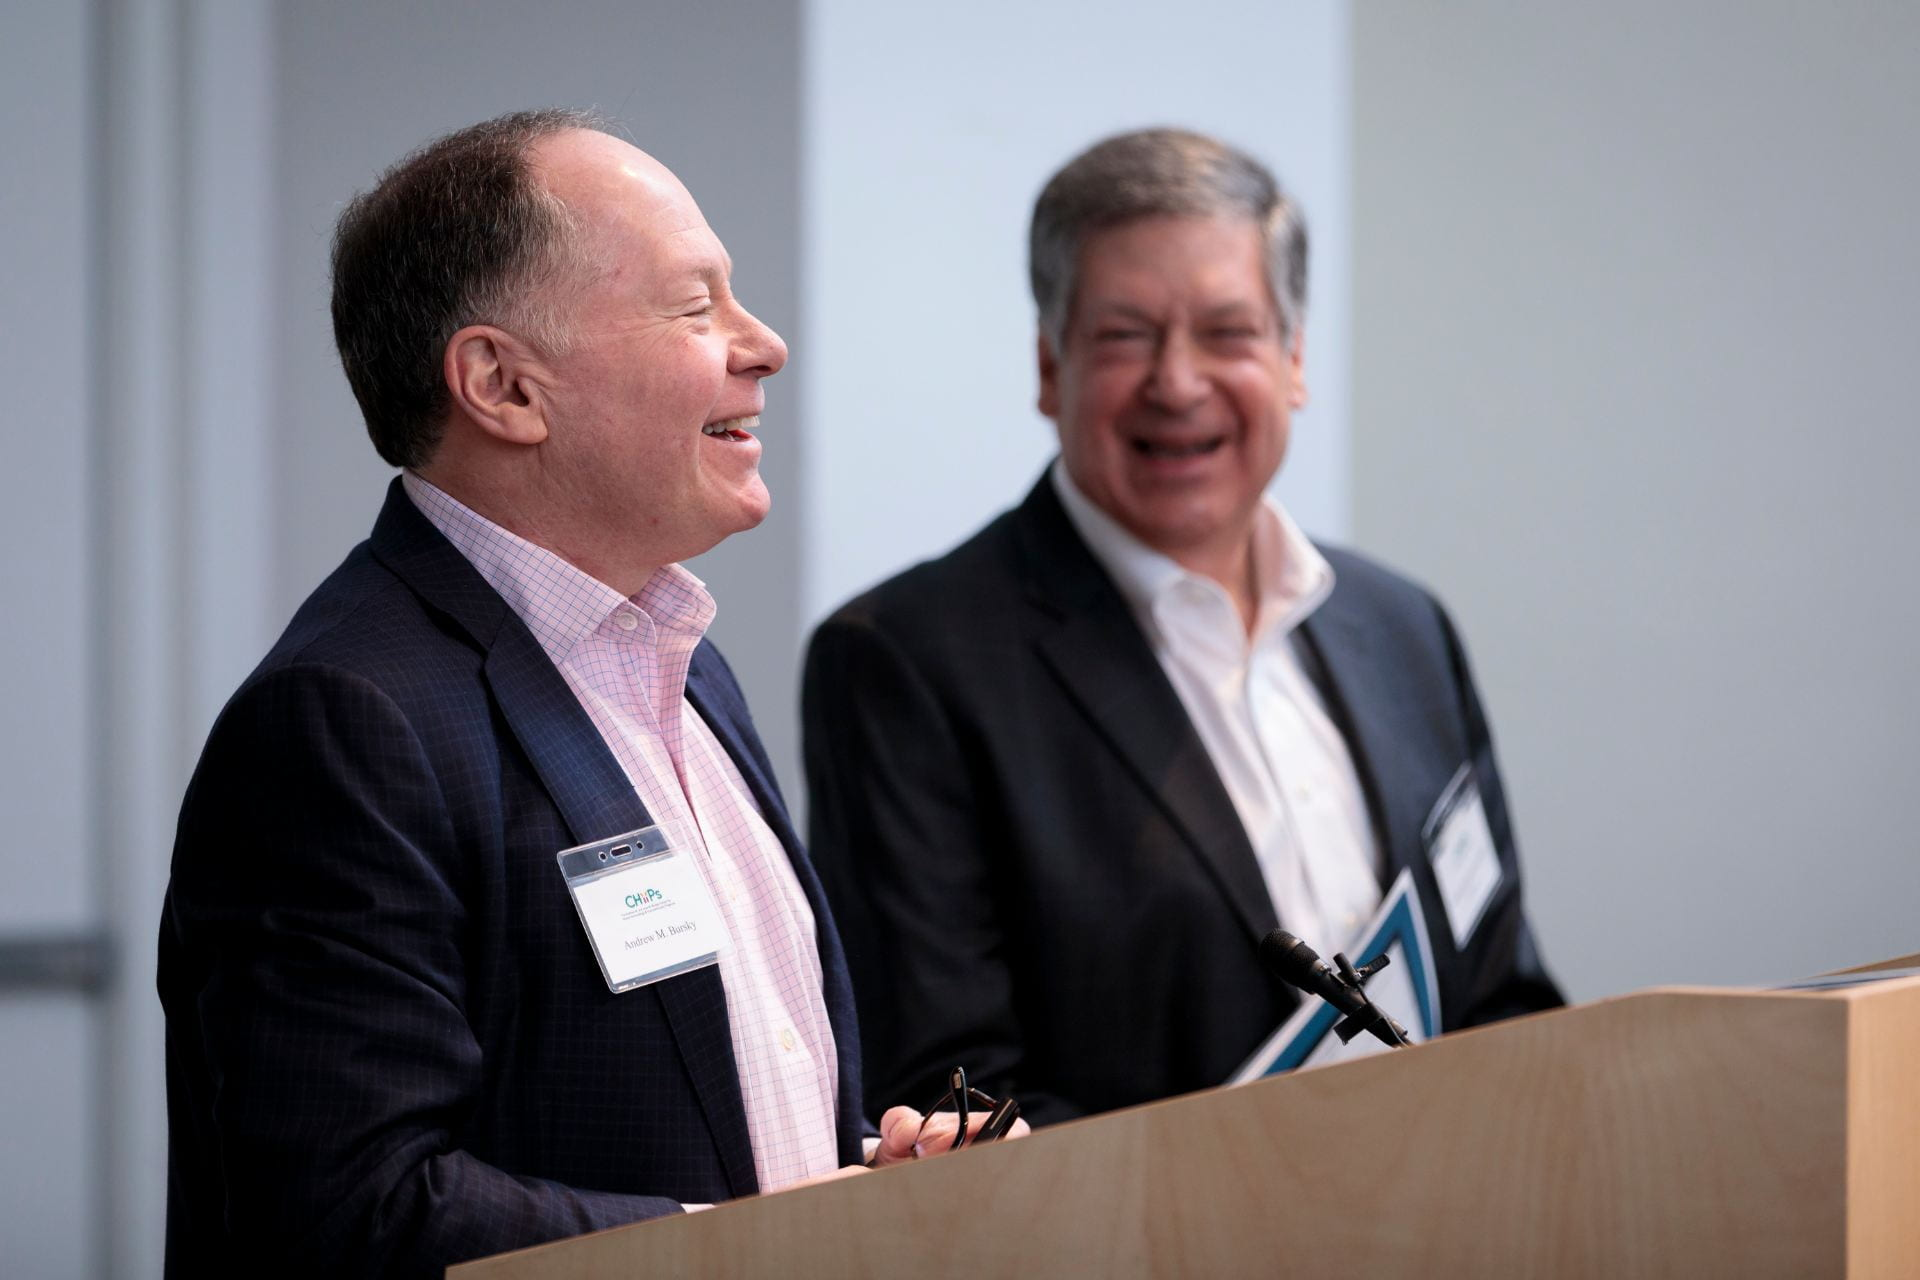 Andrew Bursky, left, and Robert Schreiber, PhD, enjoy a moment during the welcome to The Burksy Center at Washington University 2nd Annual Symposium